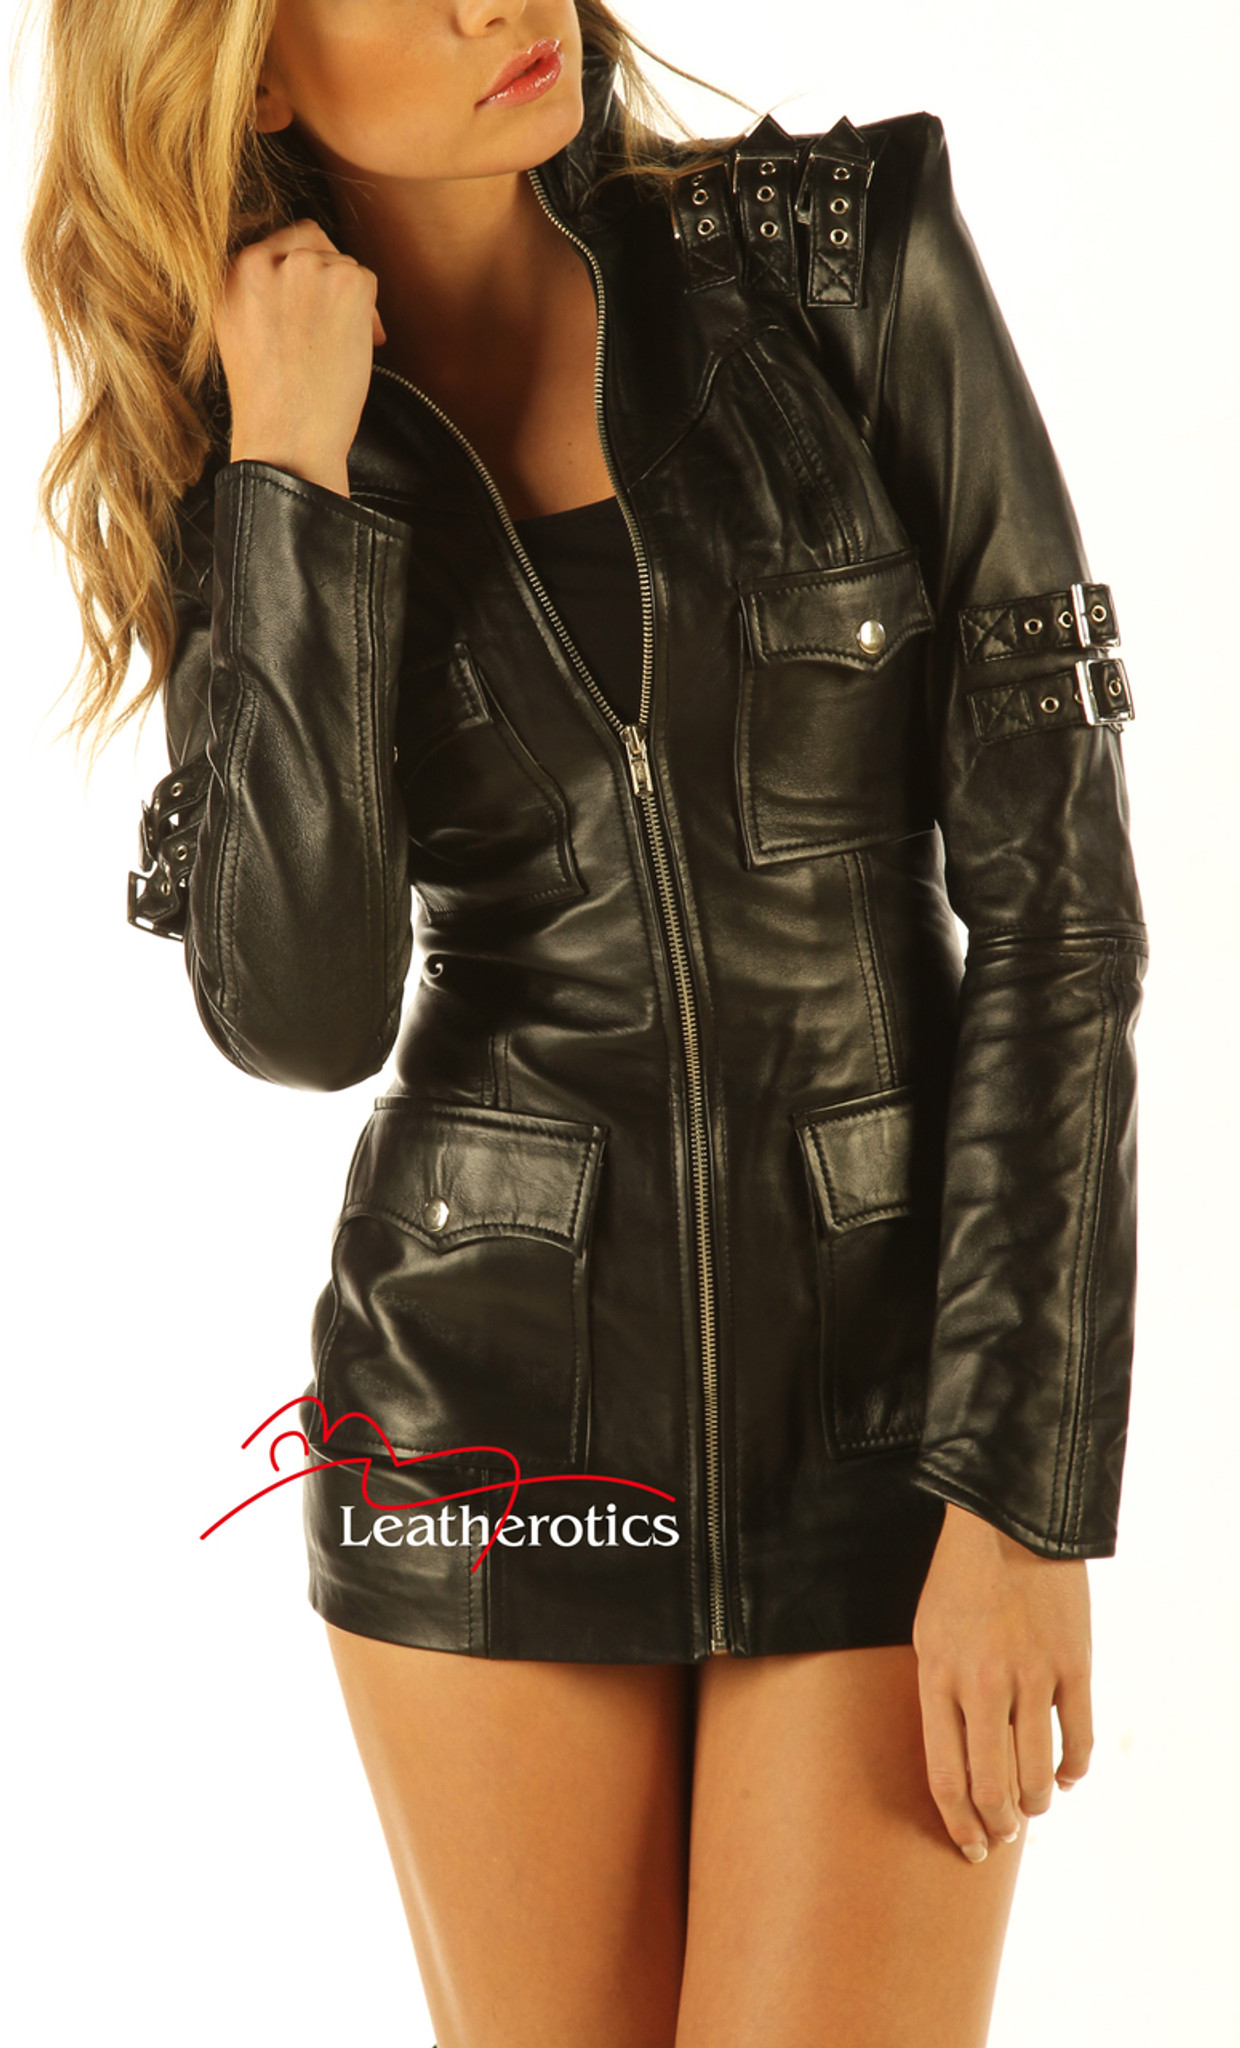 Sexy Leather Clothing  Black Leather Dress  Leather -5068